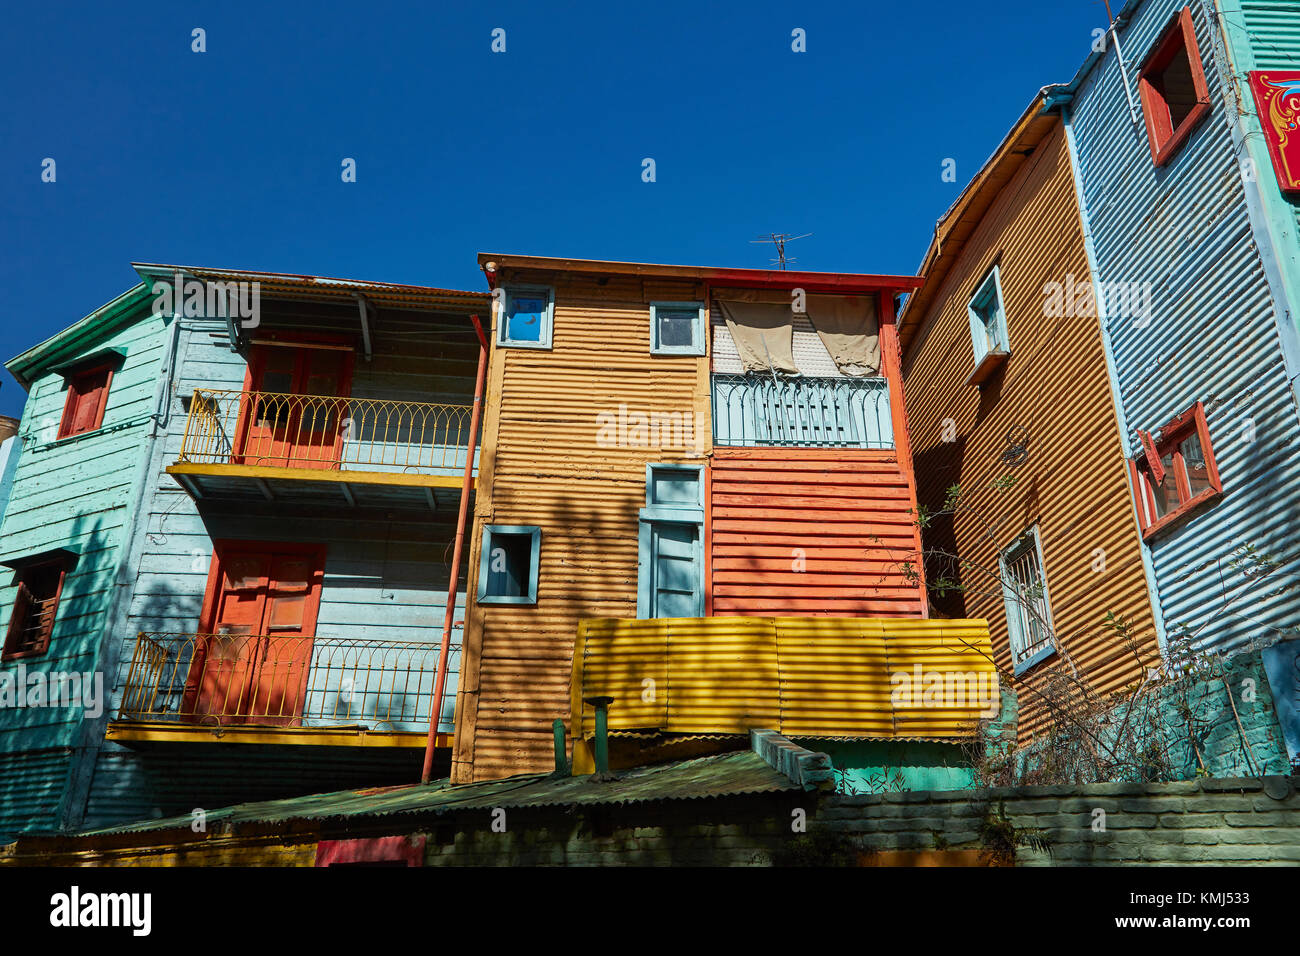 Buildings on El Caminito, La Boca, Buenos Aires, Argentina, South America - Stock Image